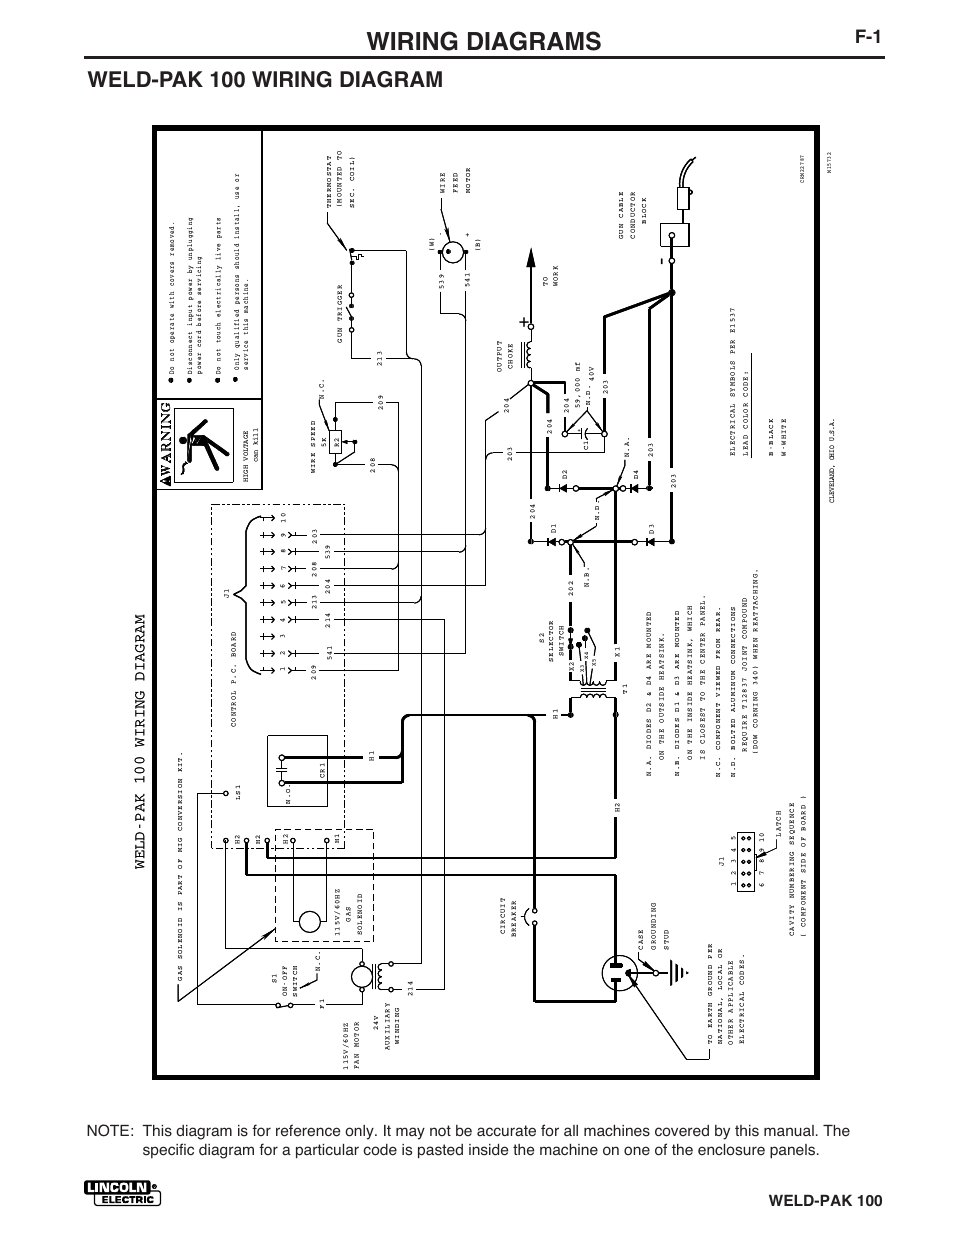 Lincoln Wiring Diagrams Library For A Limousine Weld Pak 100 Diagram